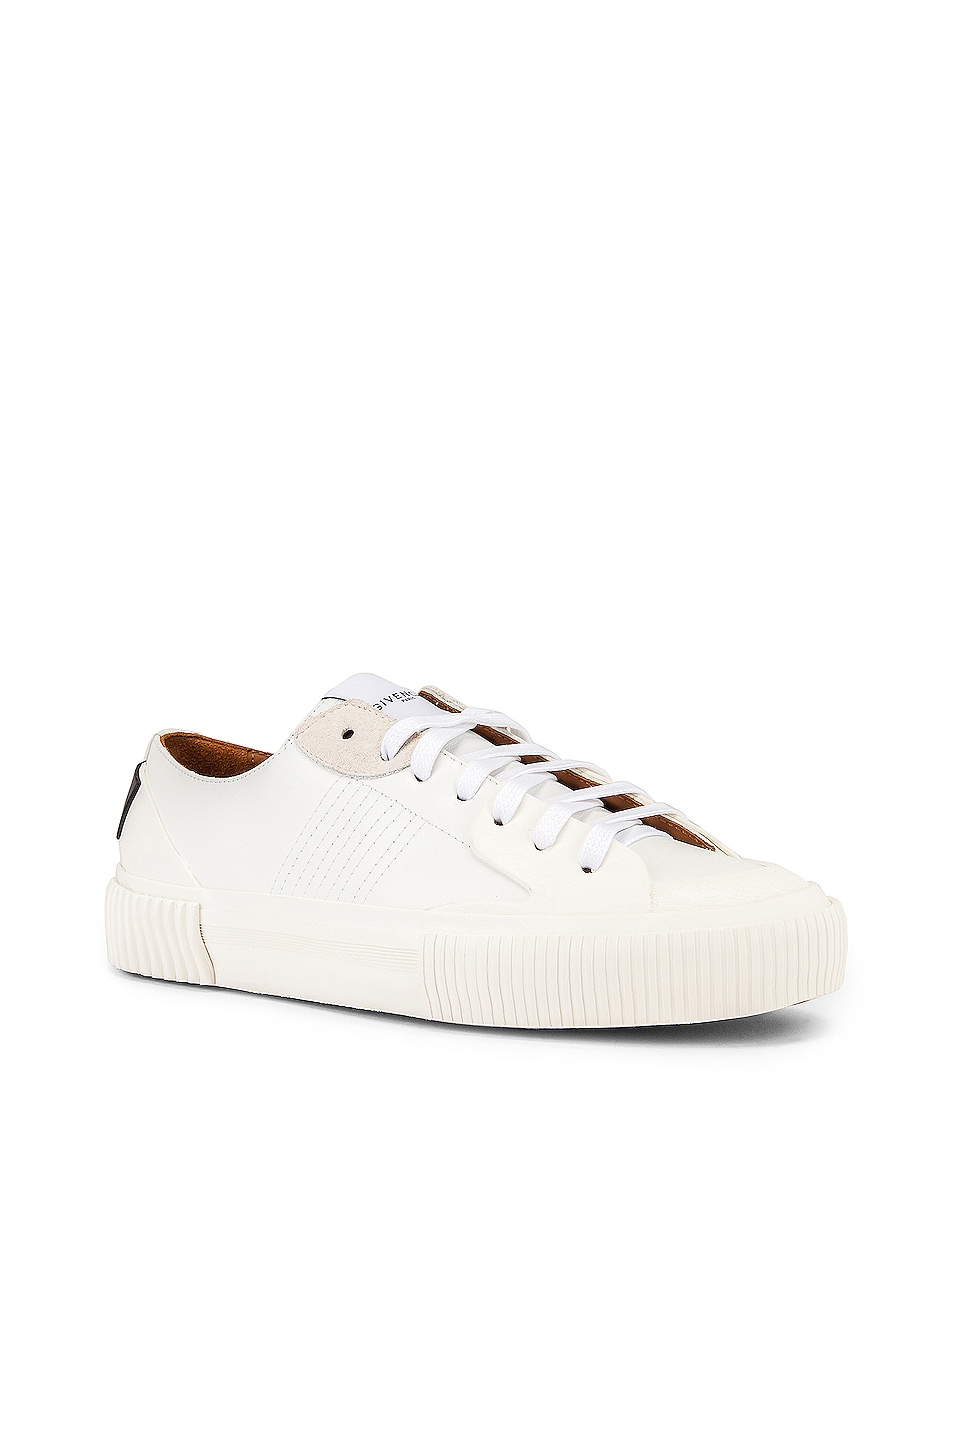 Image 2 of Givenchy Tennis Light Low Sneakers in White